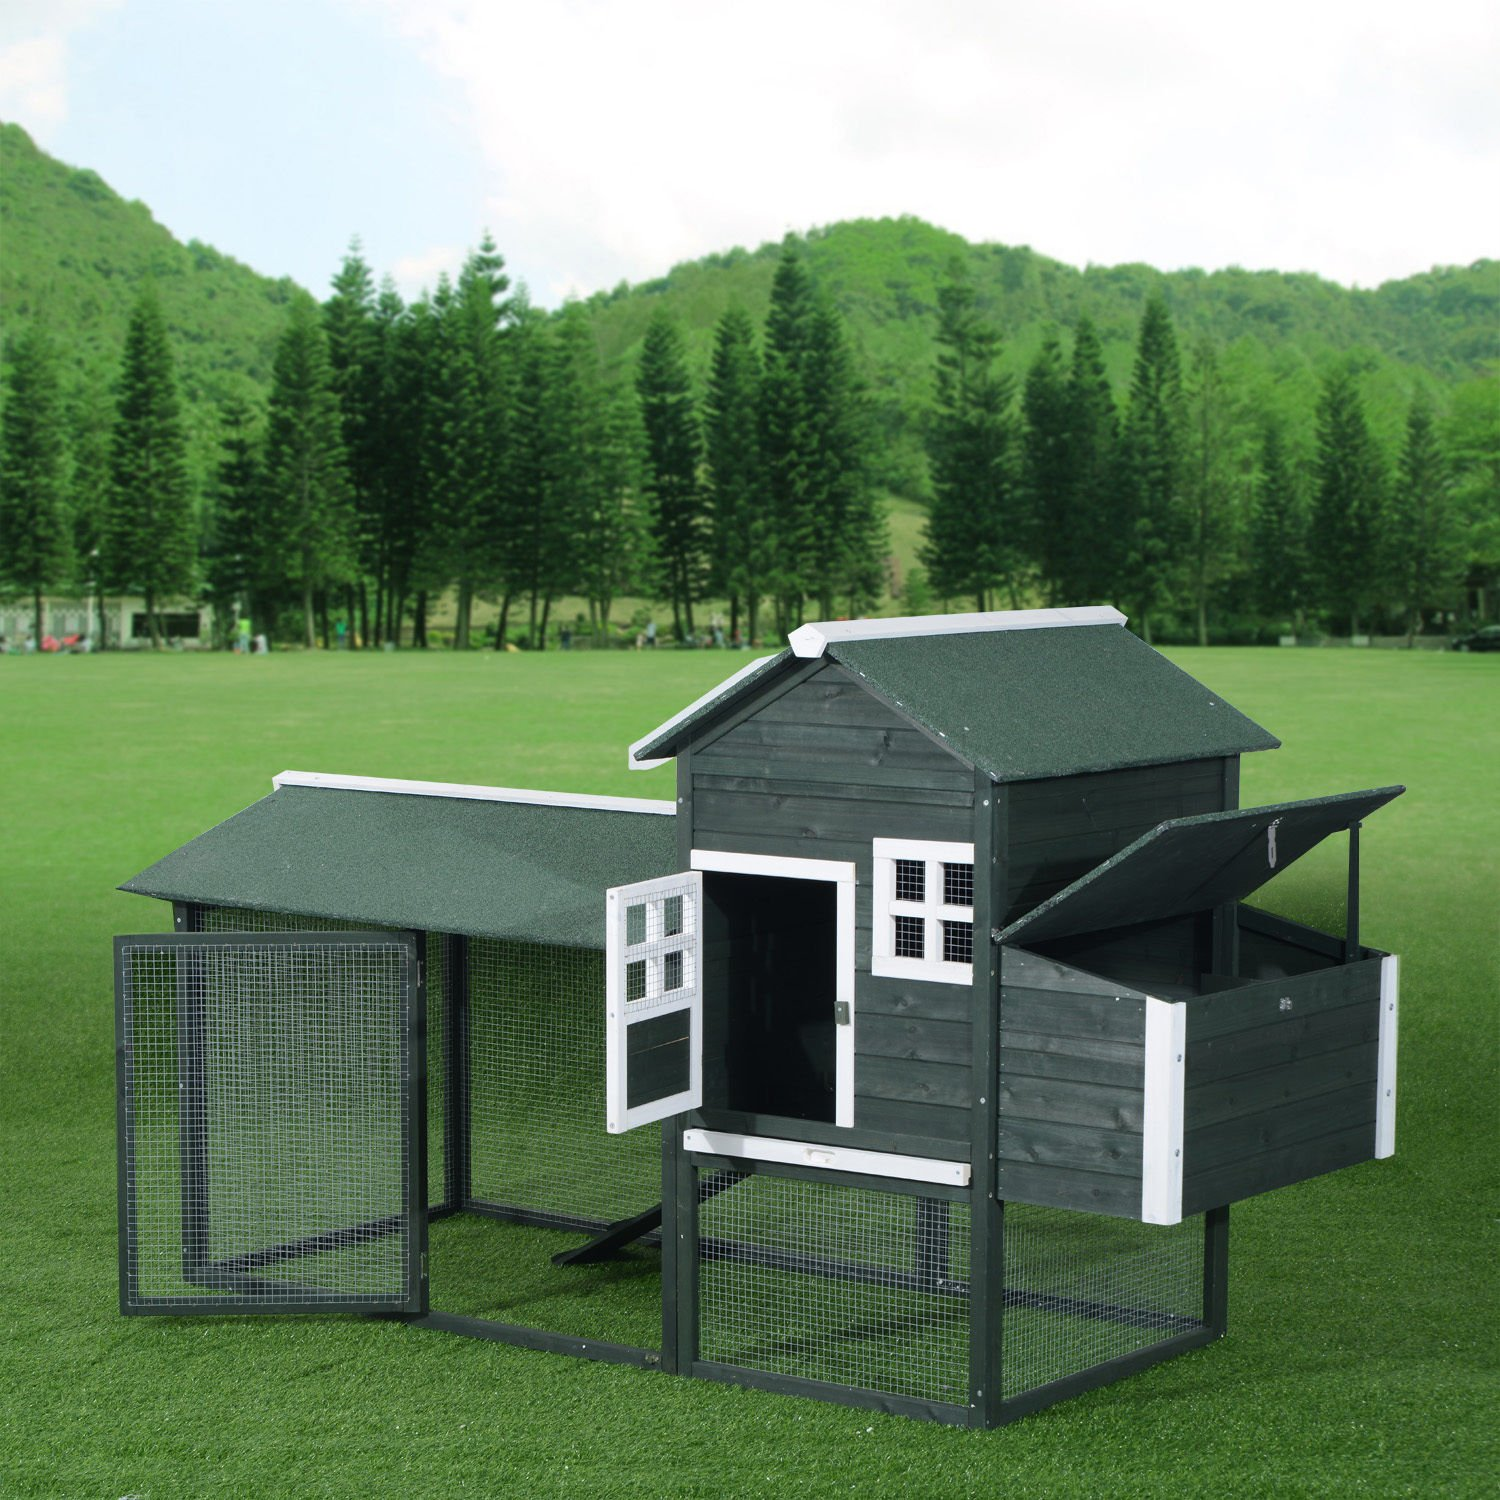 Pawhut Wooden Backyard Poultry Hen House Chicken Coop - Green by PawHut (Image #5)